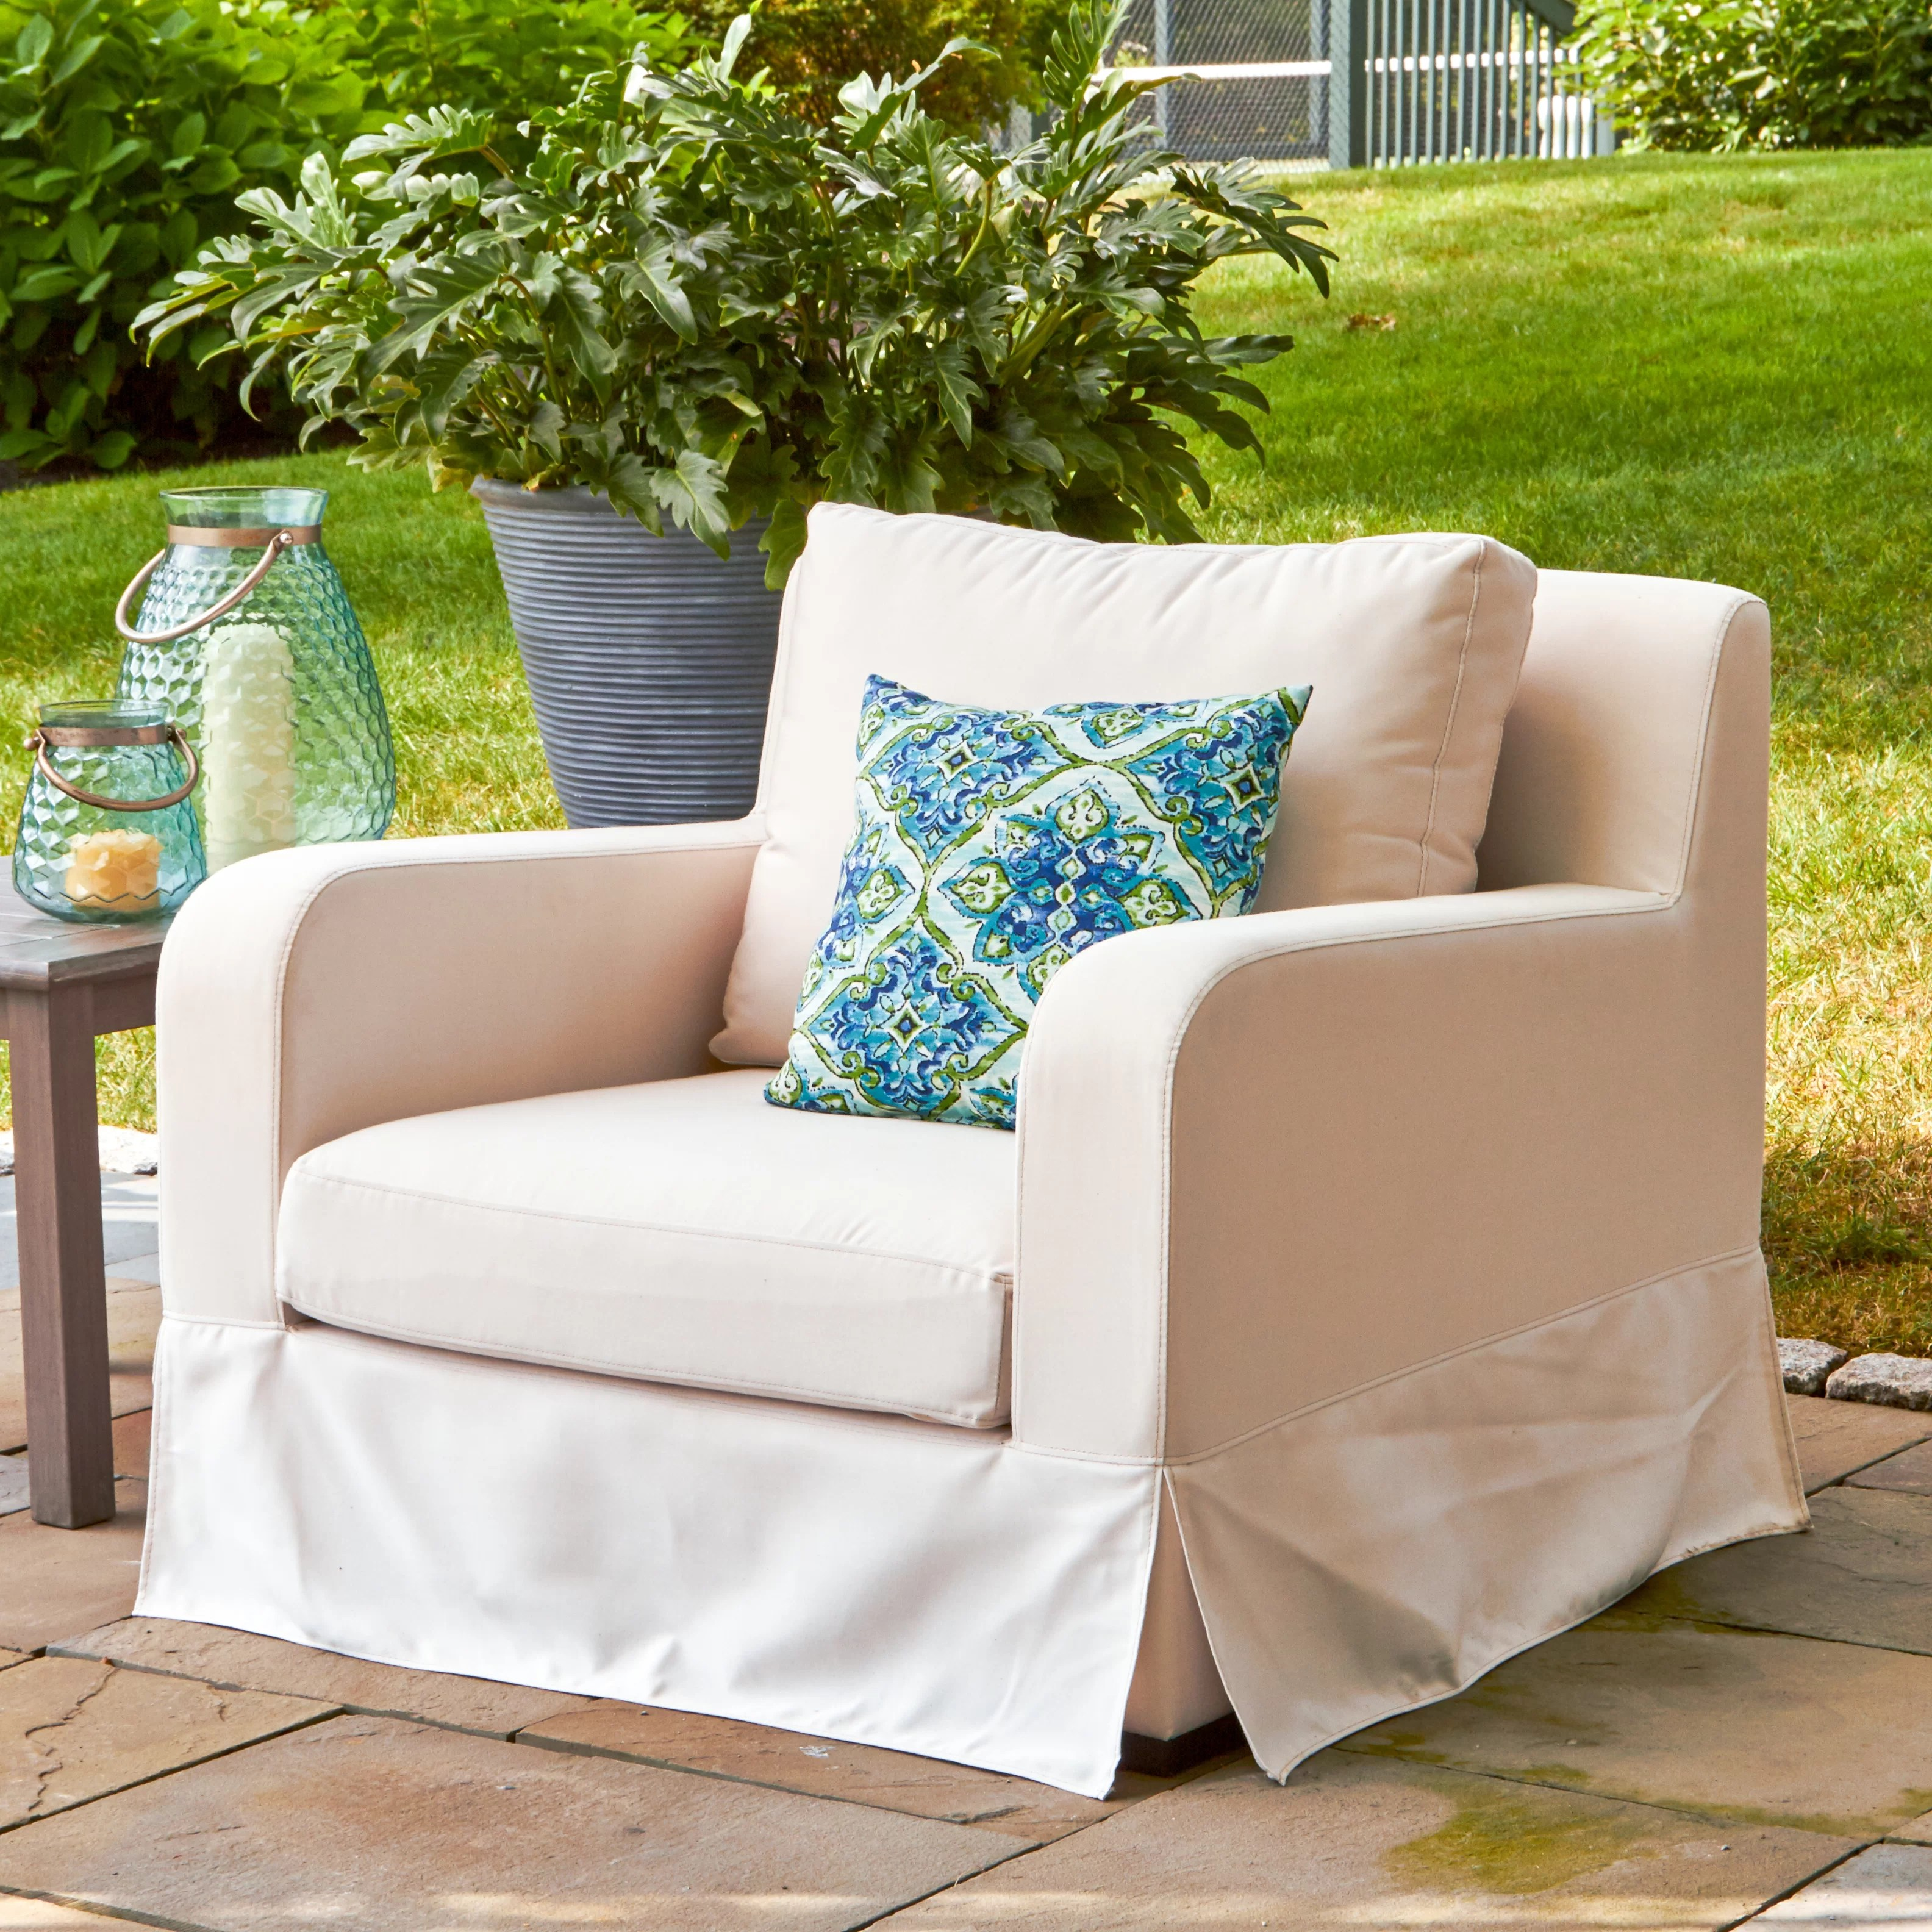 Deck Chair Cushions Arney Lounge Chair With Cushions